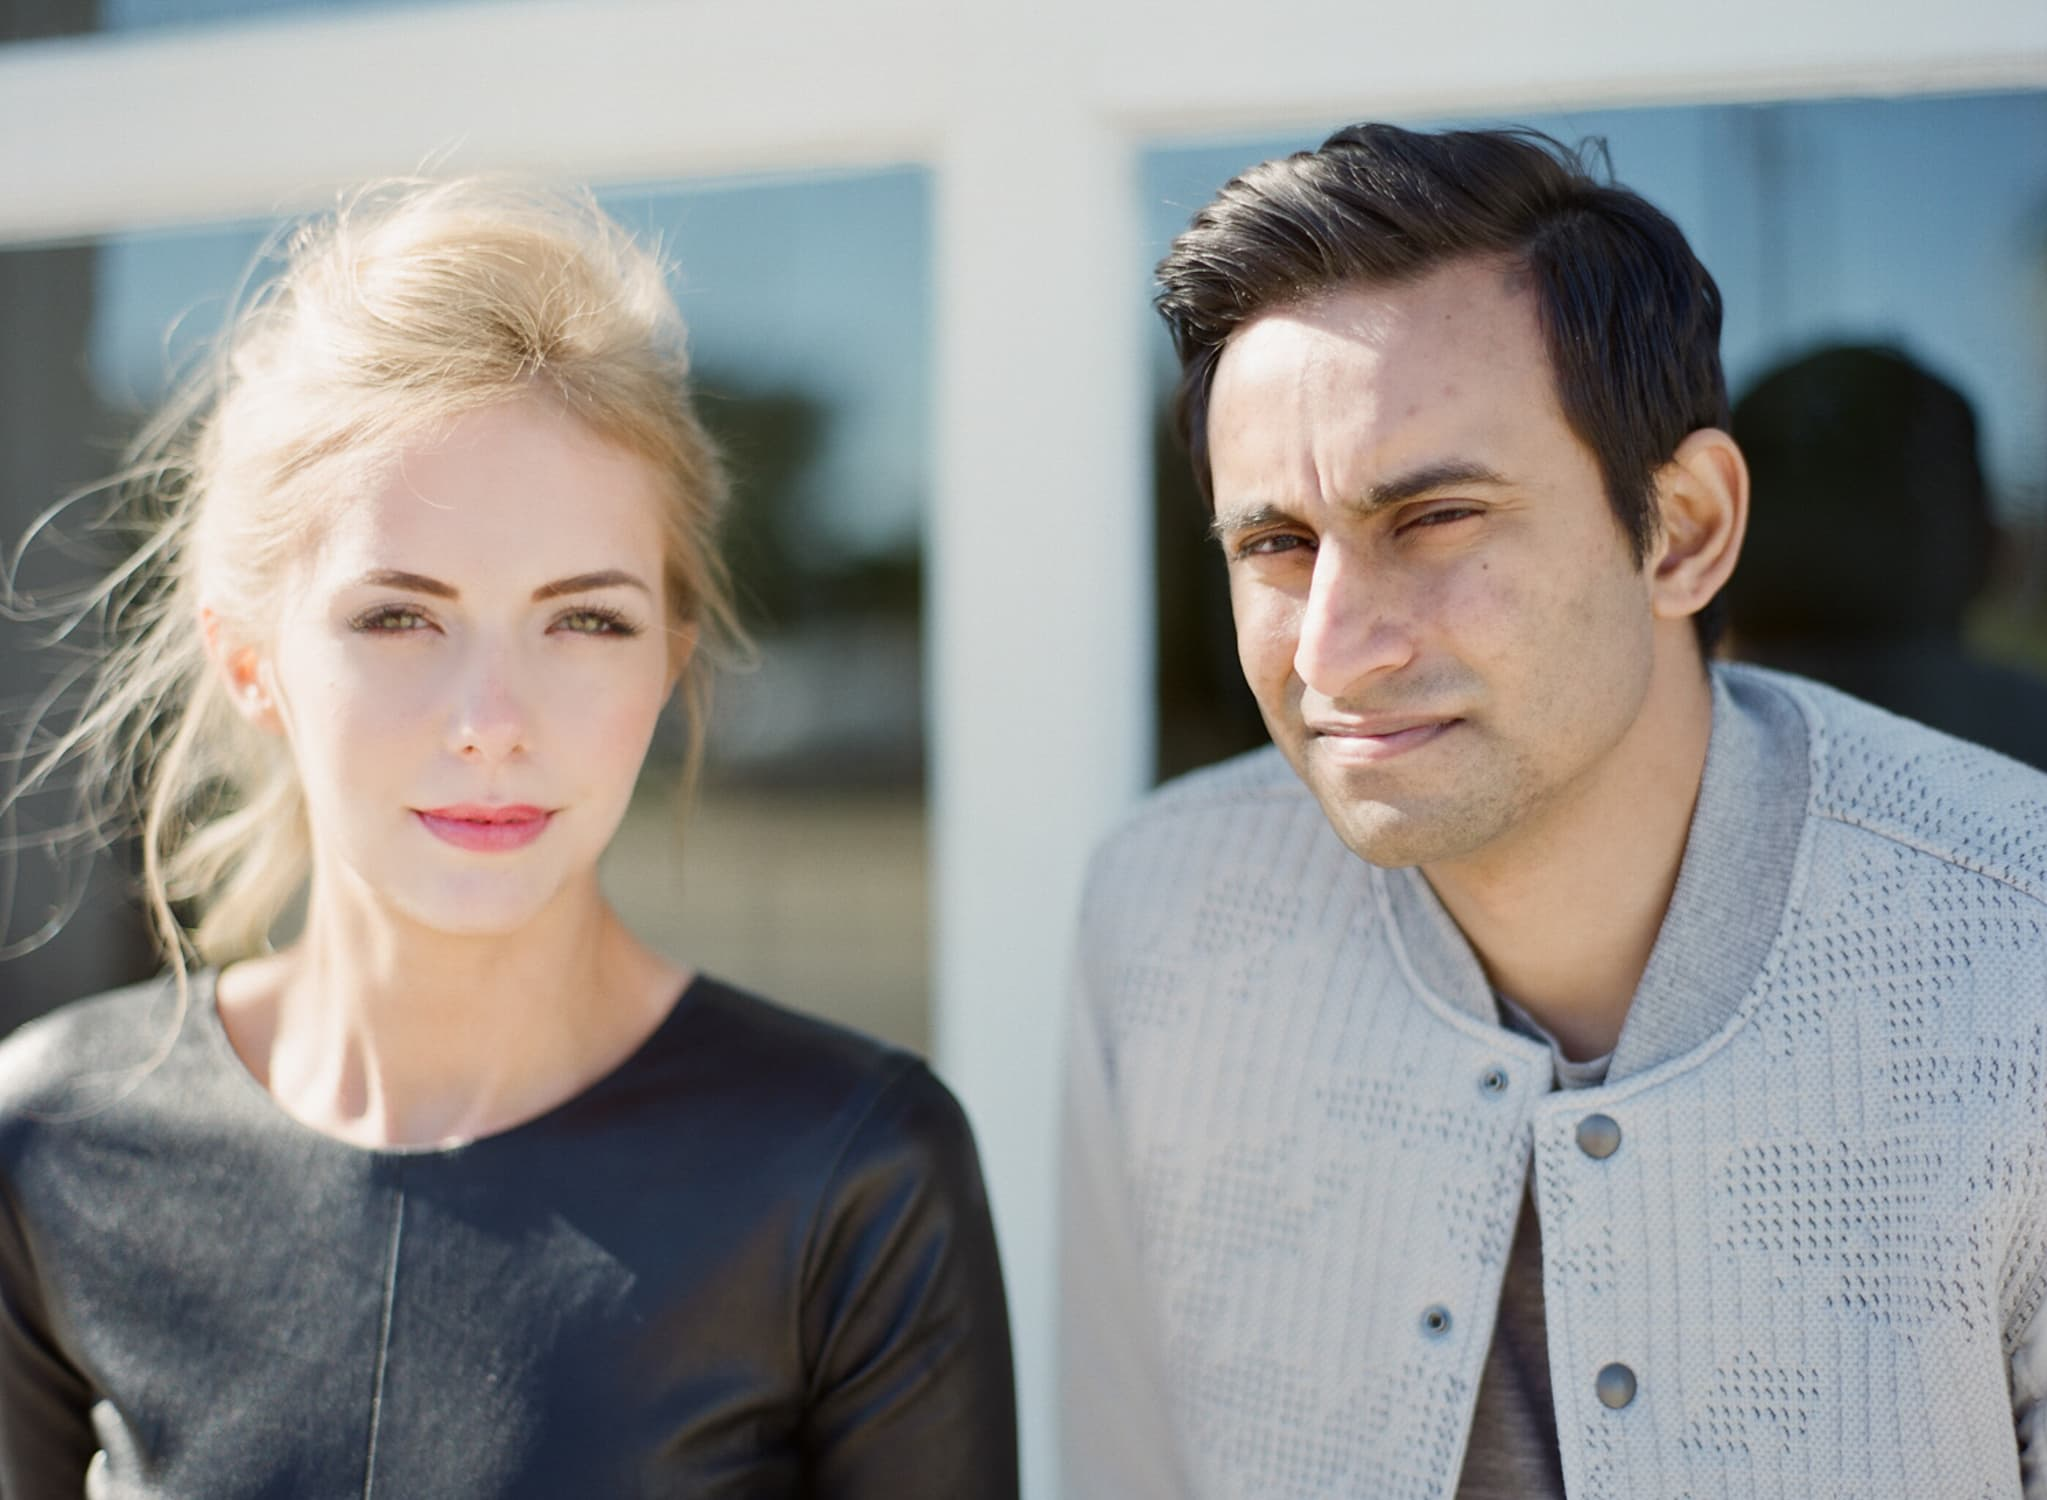 ONE_ELEVEN_EAST_MODERN_ENGAGEMENT_SHOOT_AUSTIN_TX_BY_MATTHEW_MOORE_PHOTOGRAPHY_00174.jpg